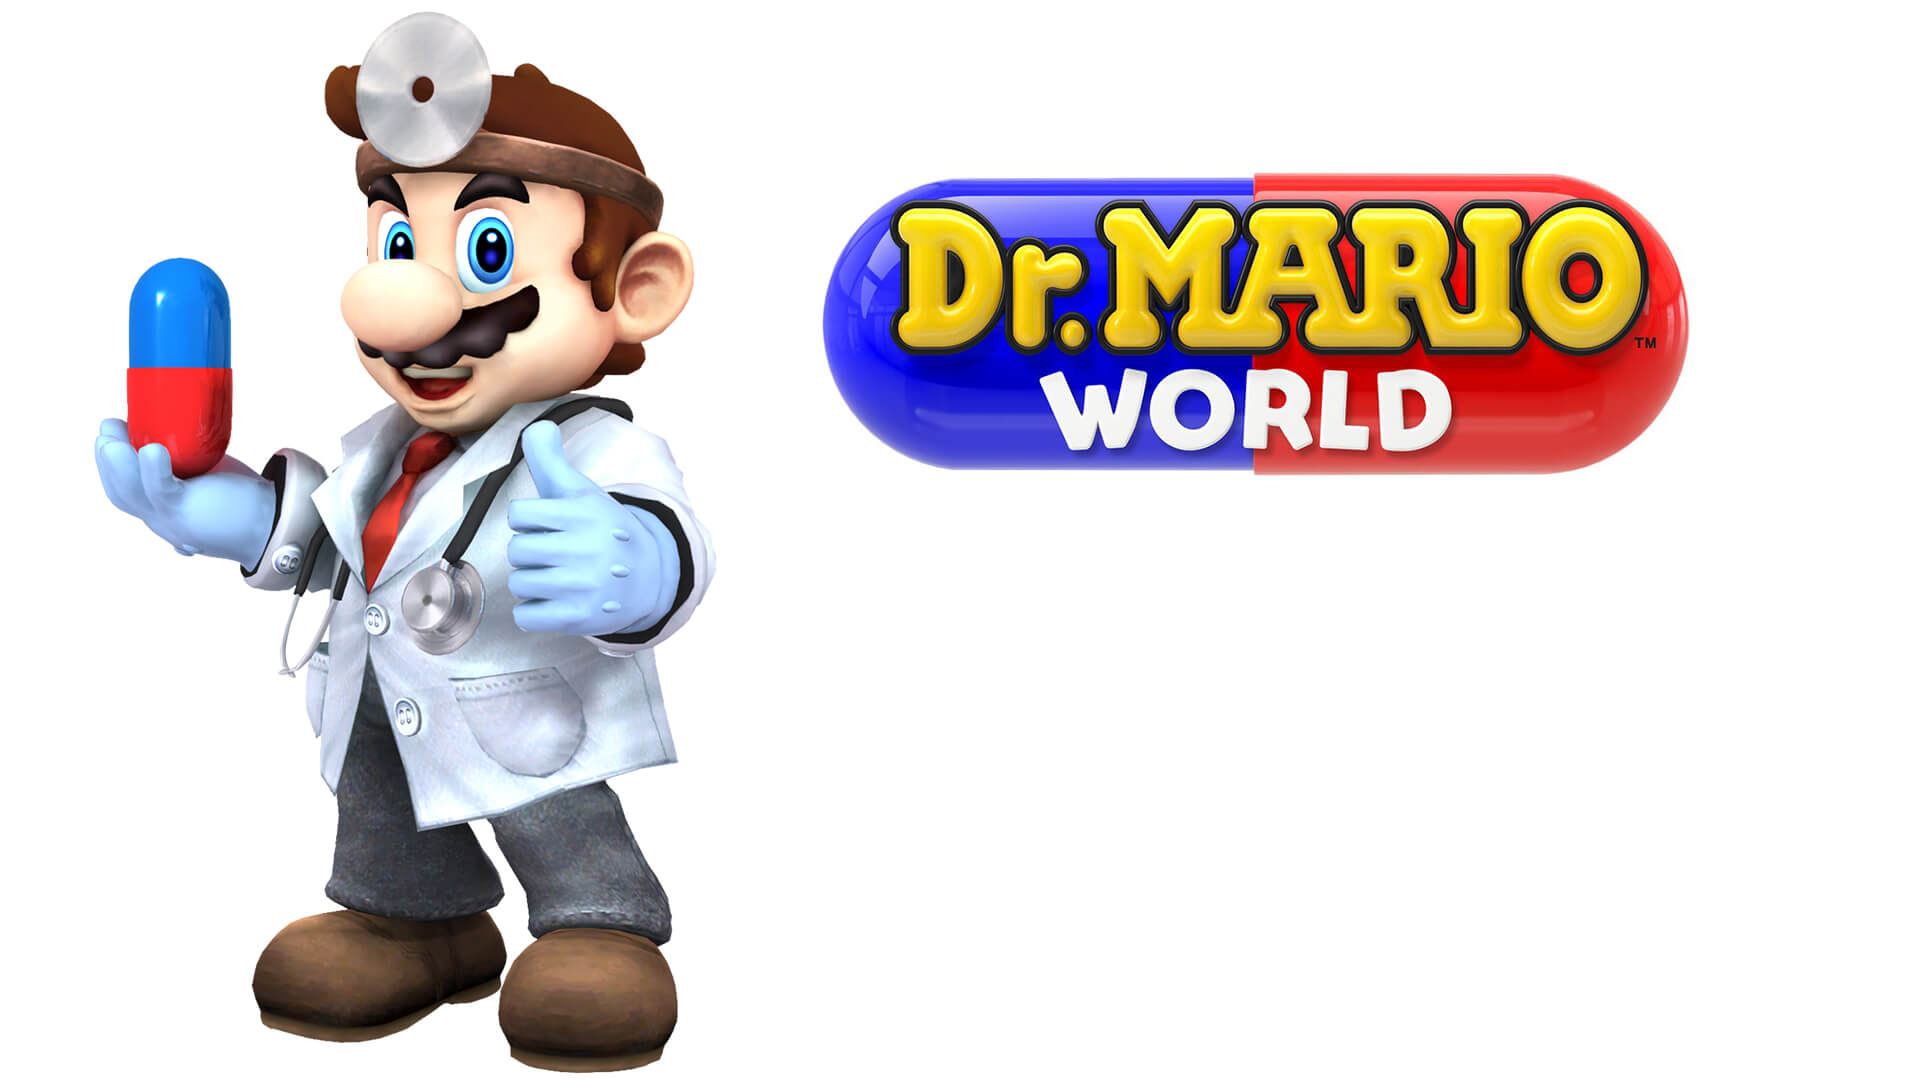 Opinion: Why Dr. Mario World is Better Than Candy Crush